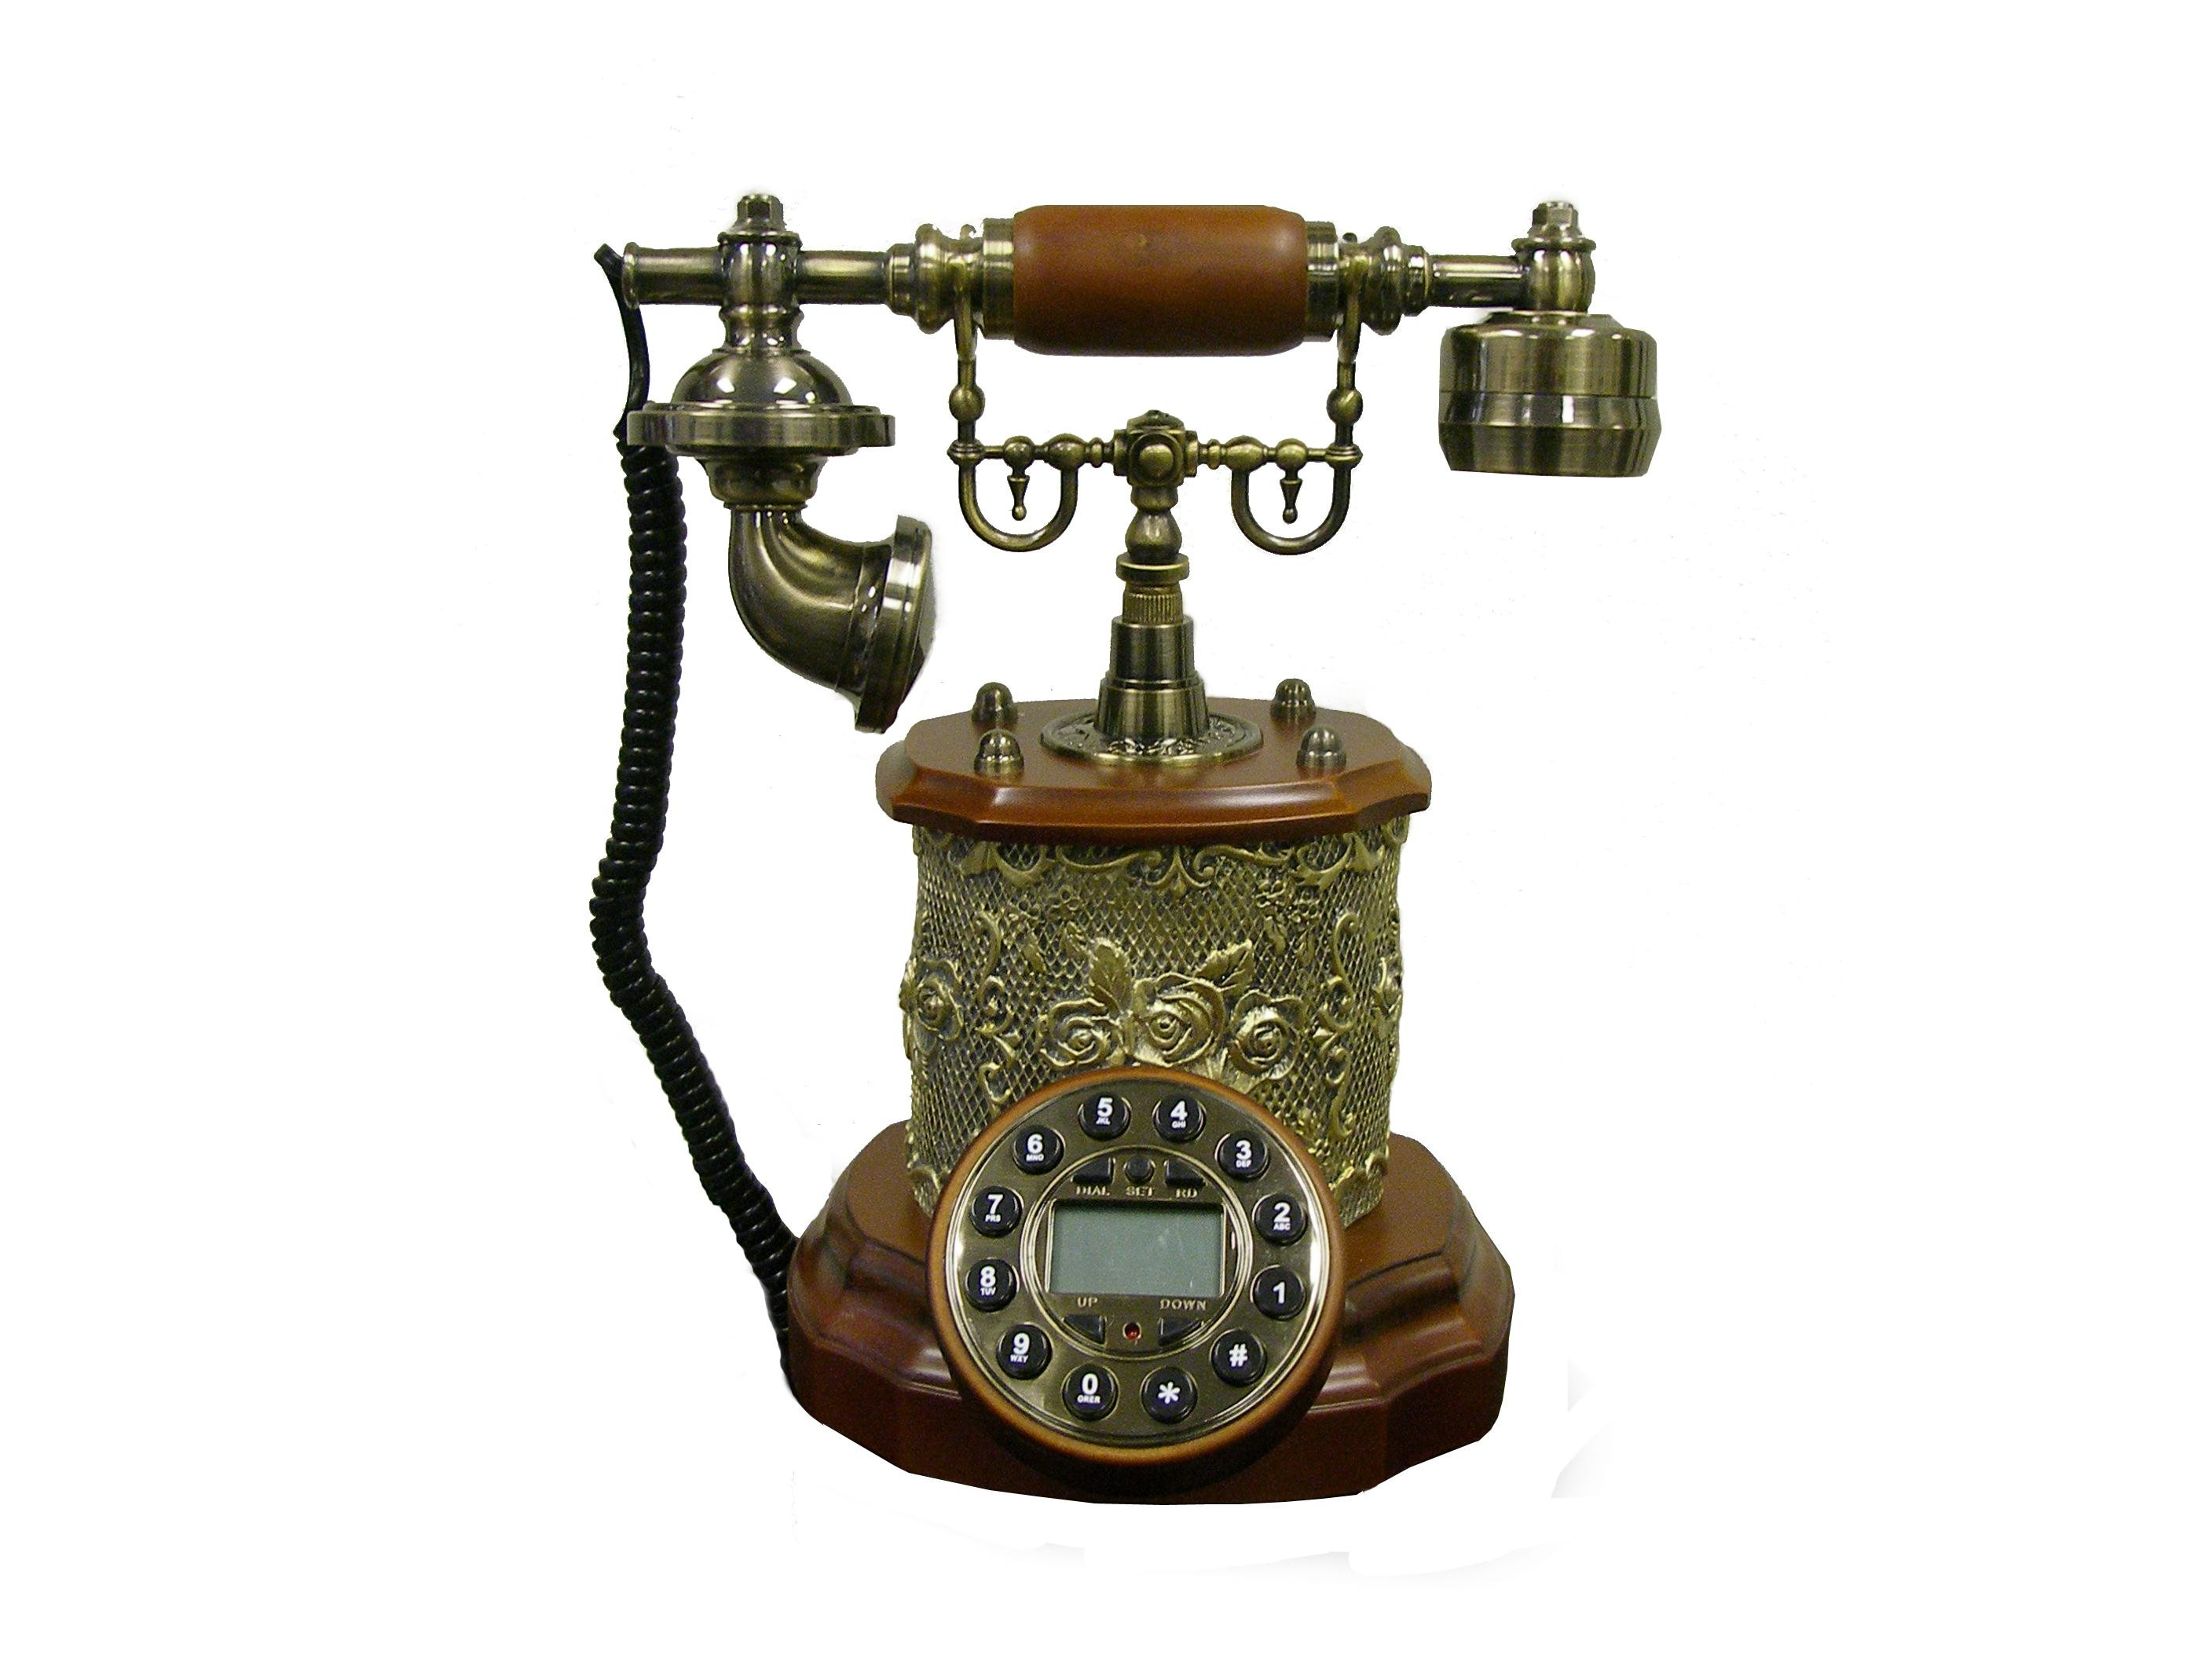 Beautiful 1000 Images About Antique Telephones On Pinterest Old Antique Phones Of Gorgeous 41 Photos Old Antique Phones